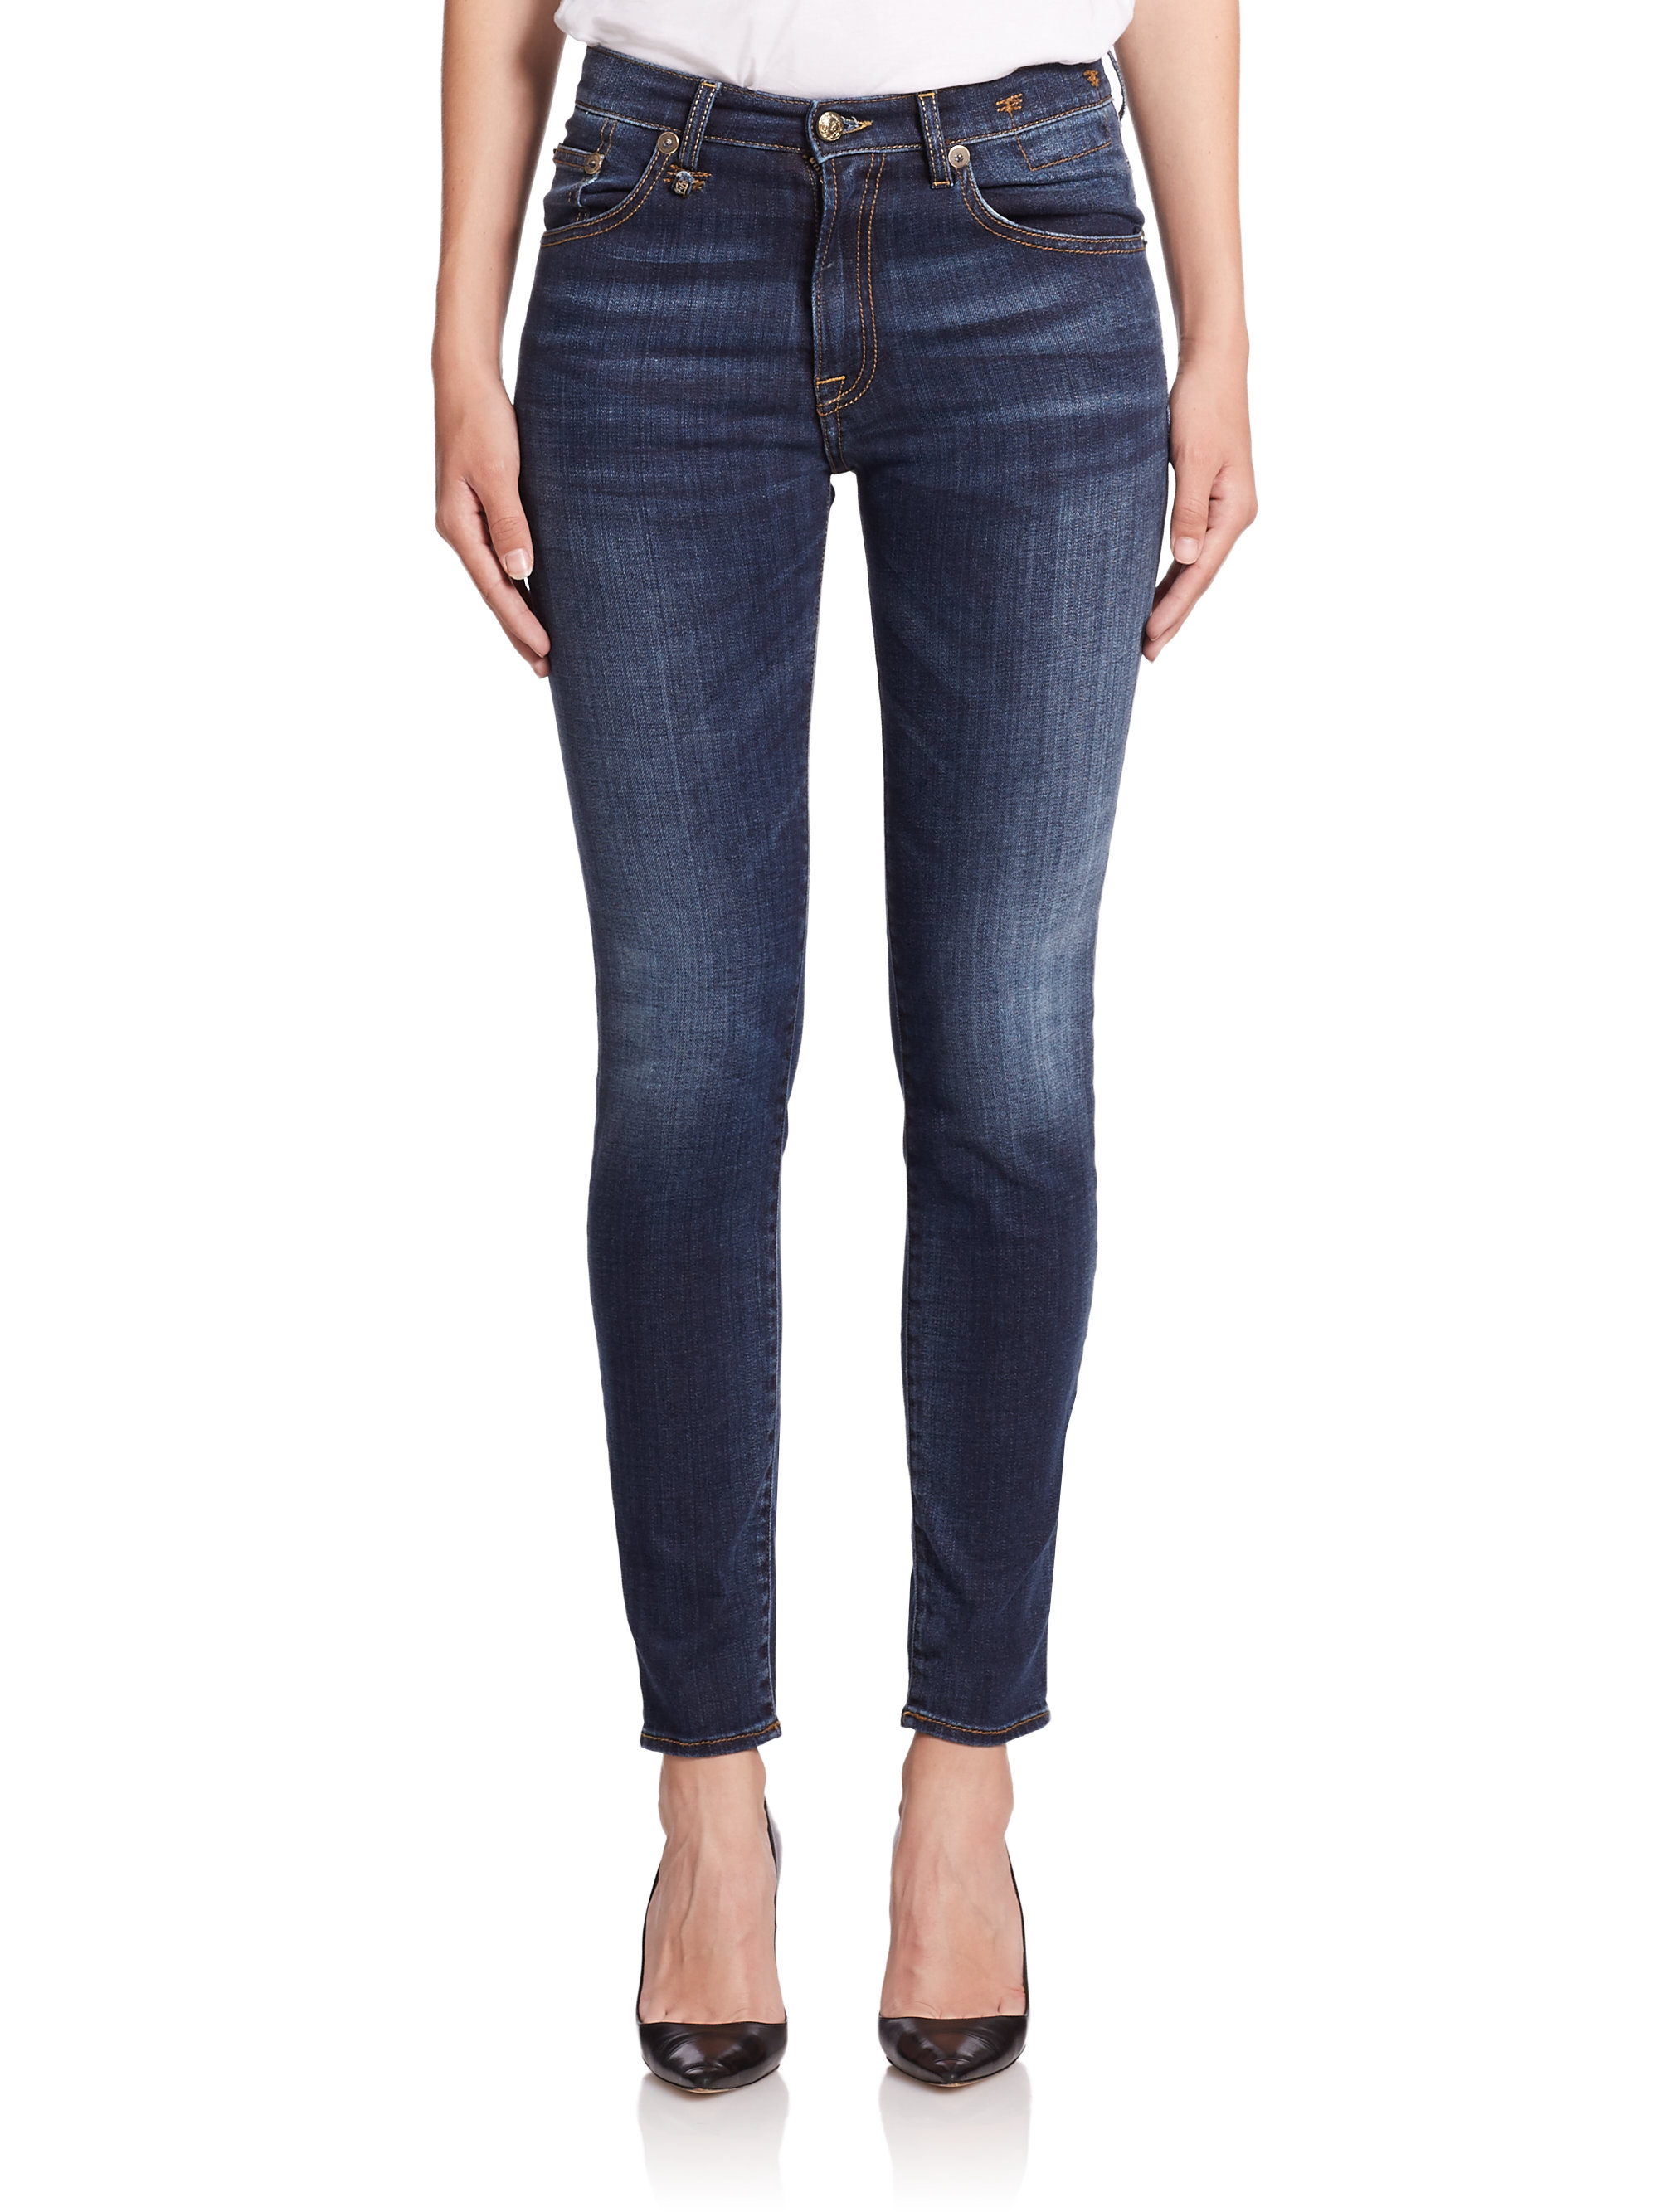 high waisted cropped jeans - Blue R13 xPx0LwnF6c